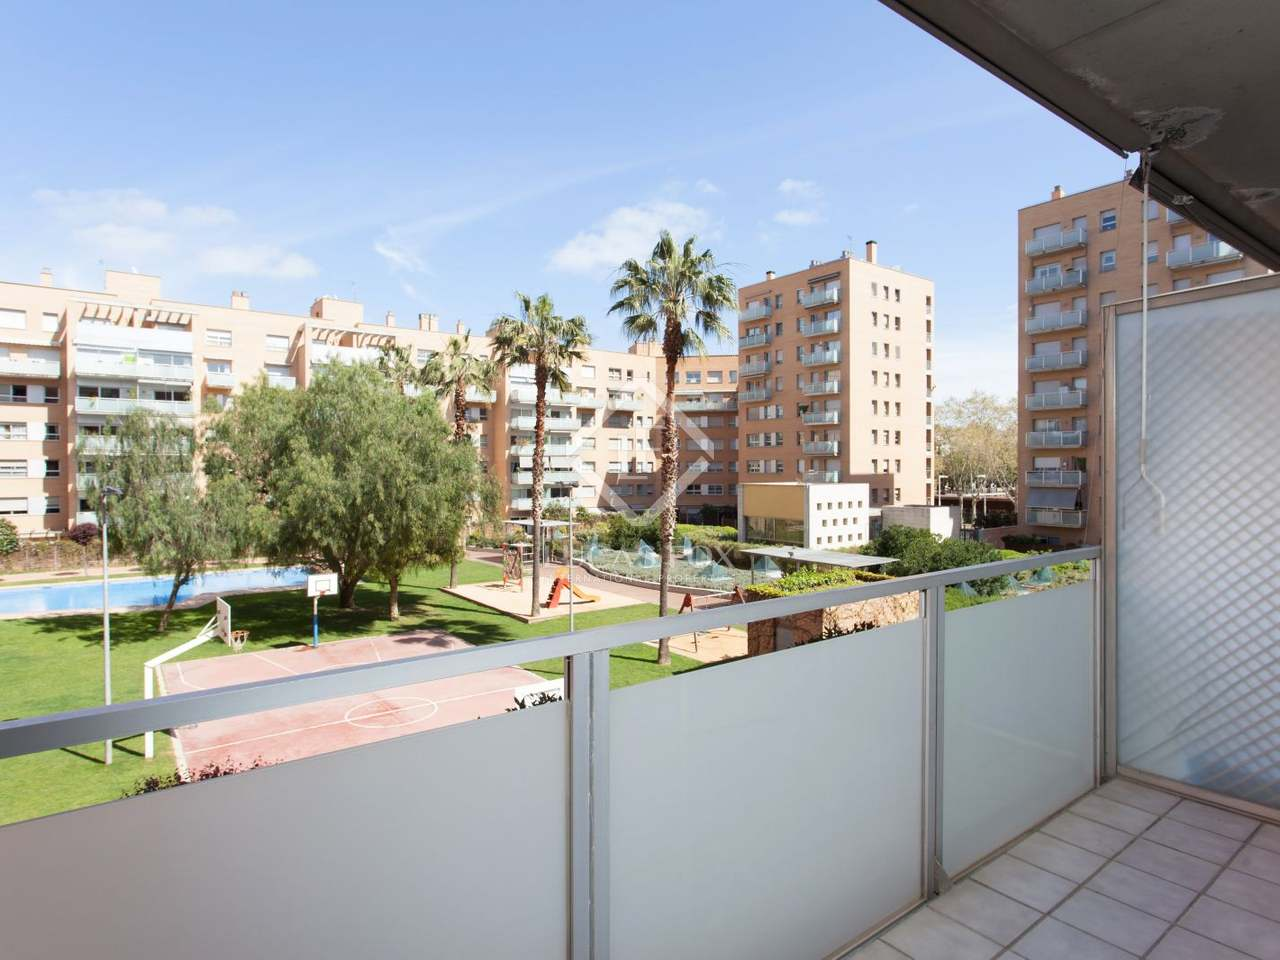 Apartment for sale near the beach in vila ol mpica with a for Barcelona pool garden 4